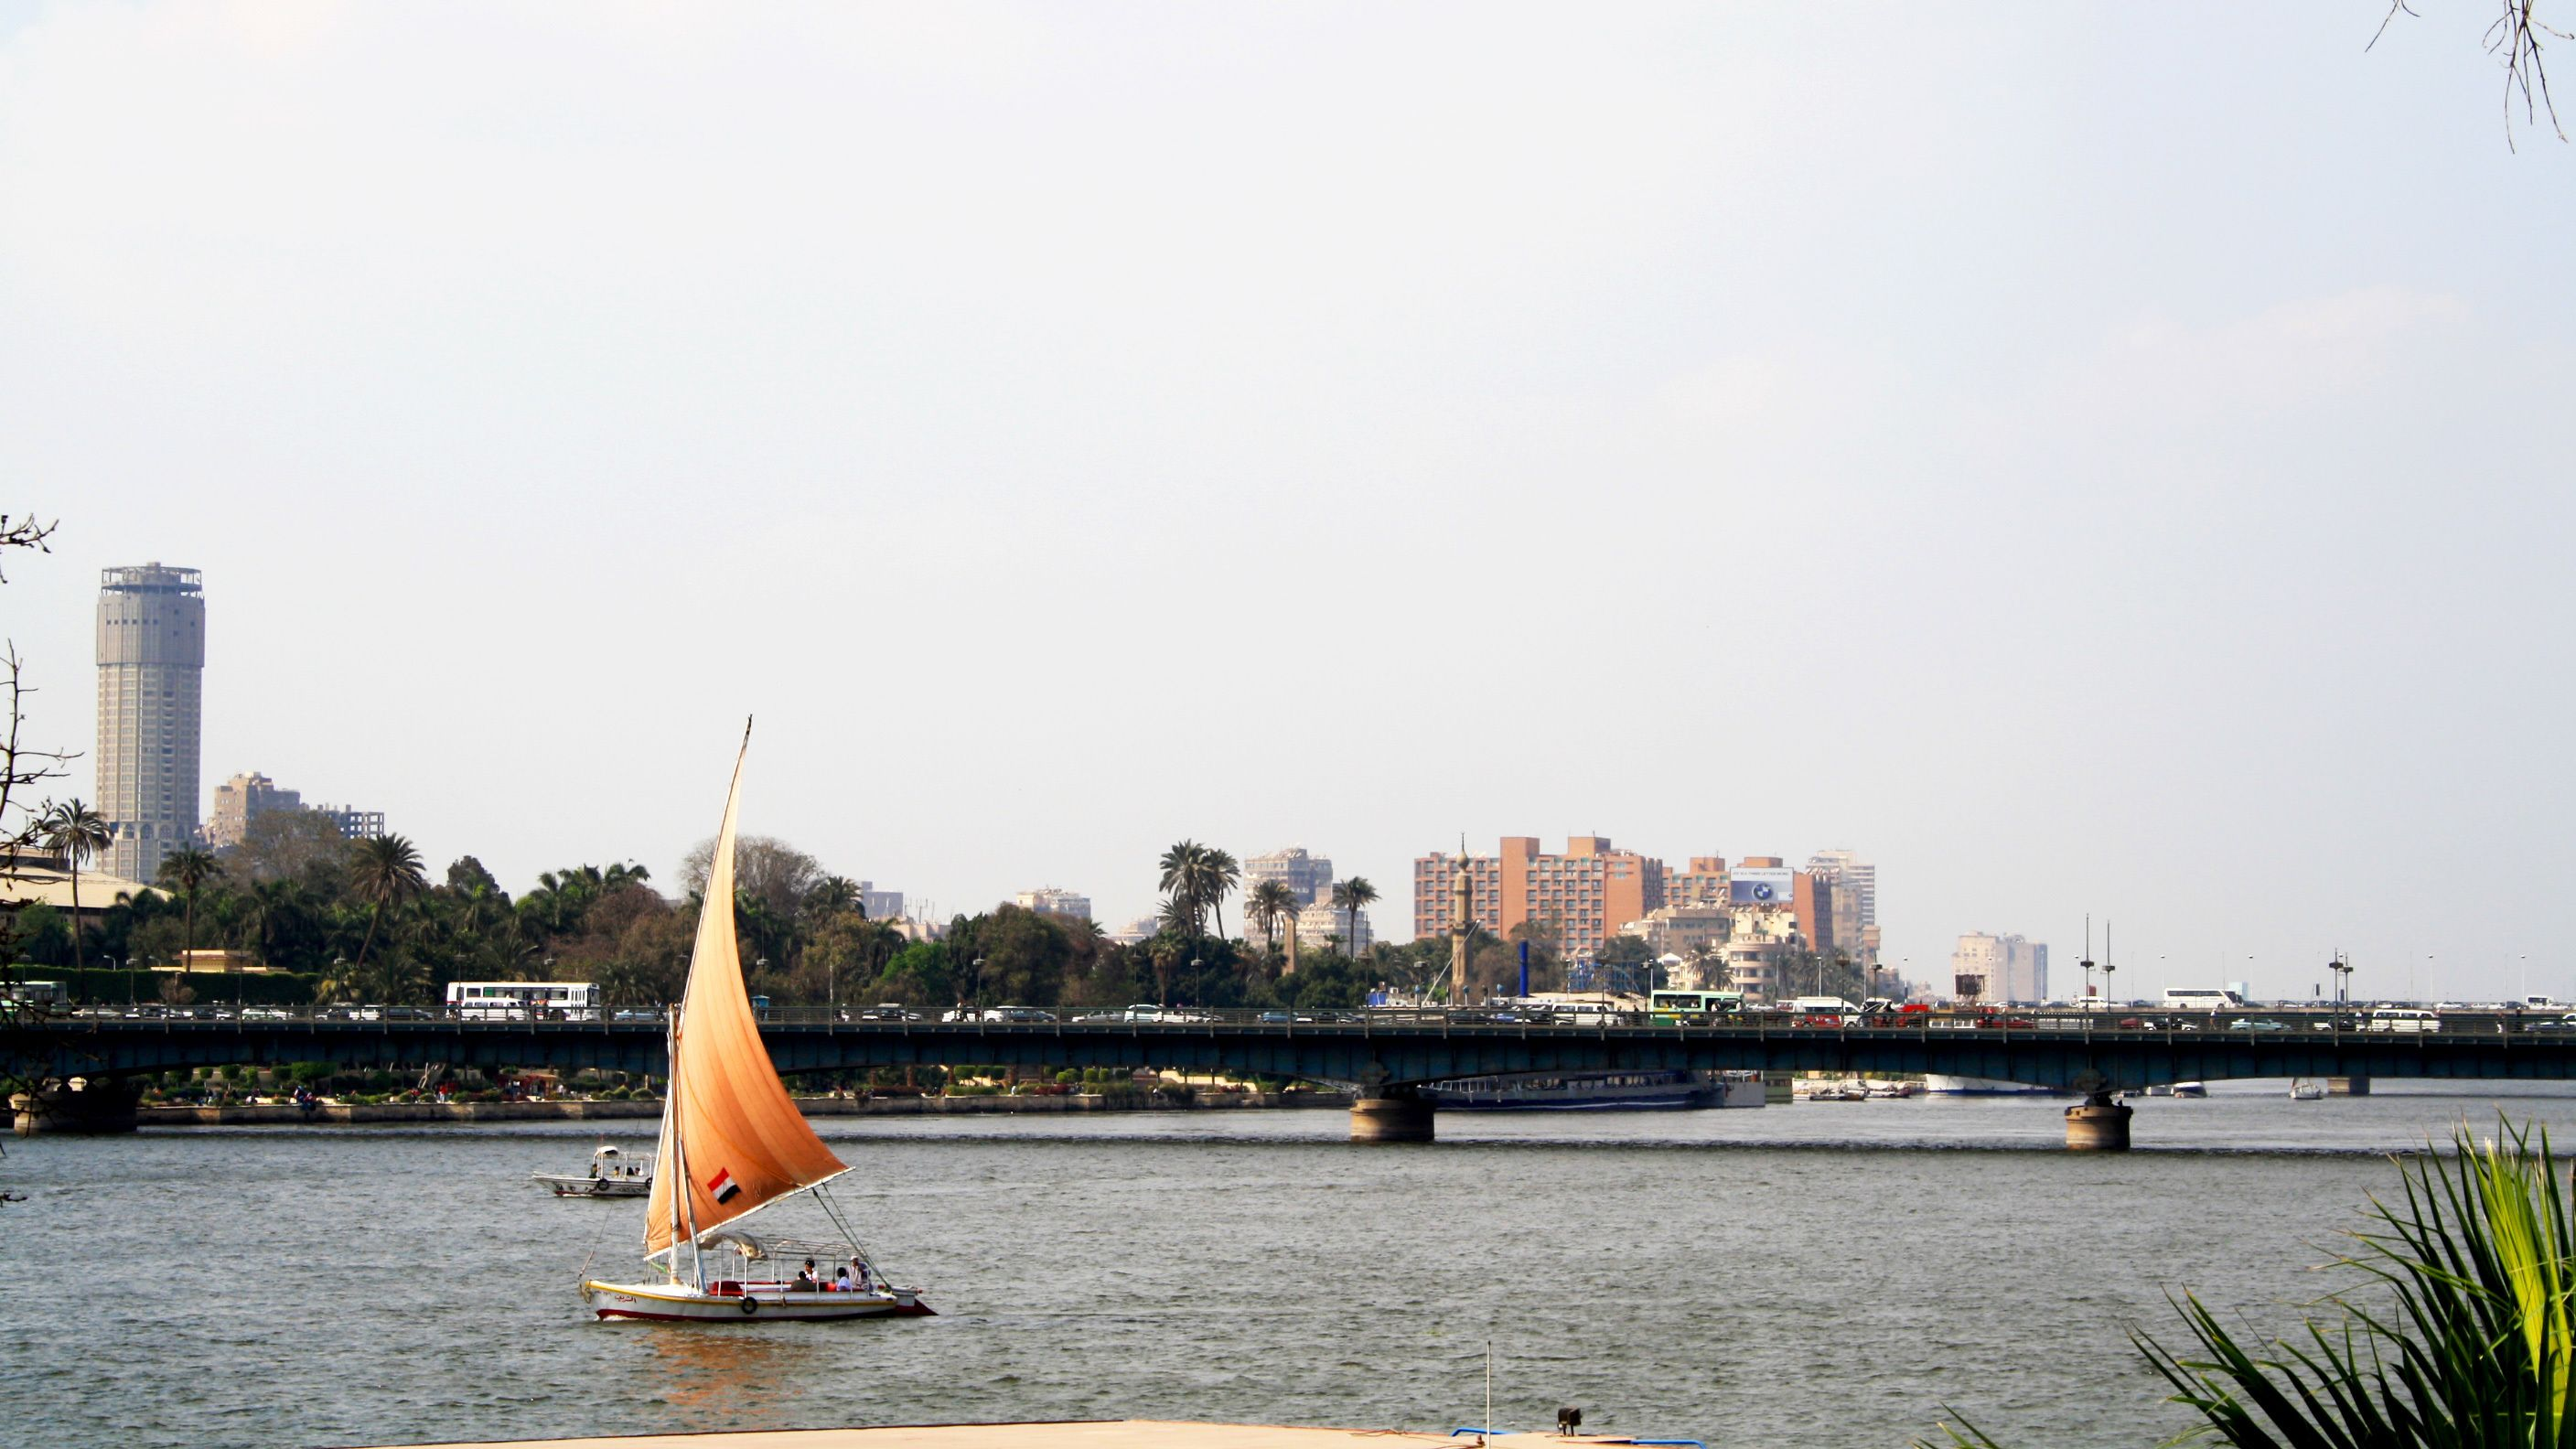 Day view of the River Nile during the day in Cairo